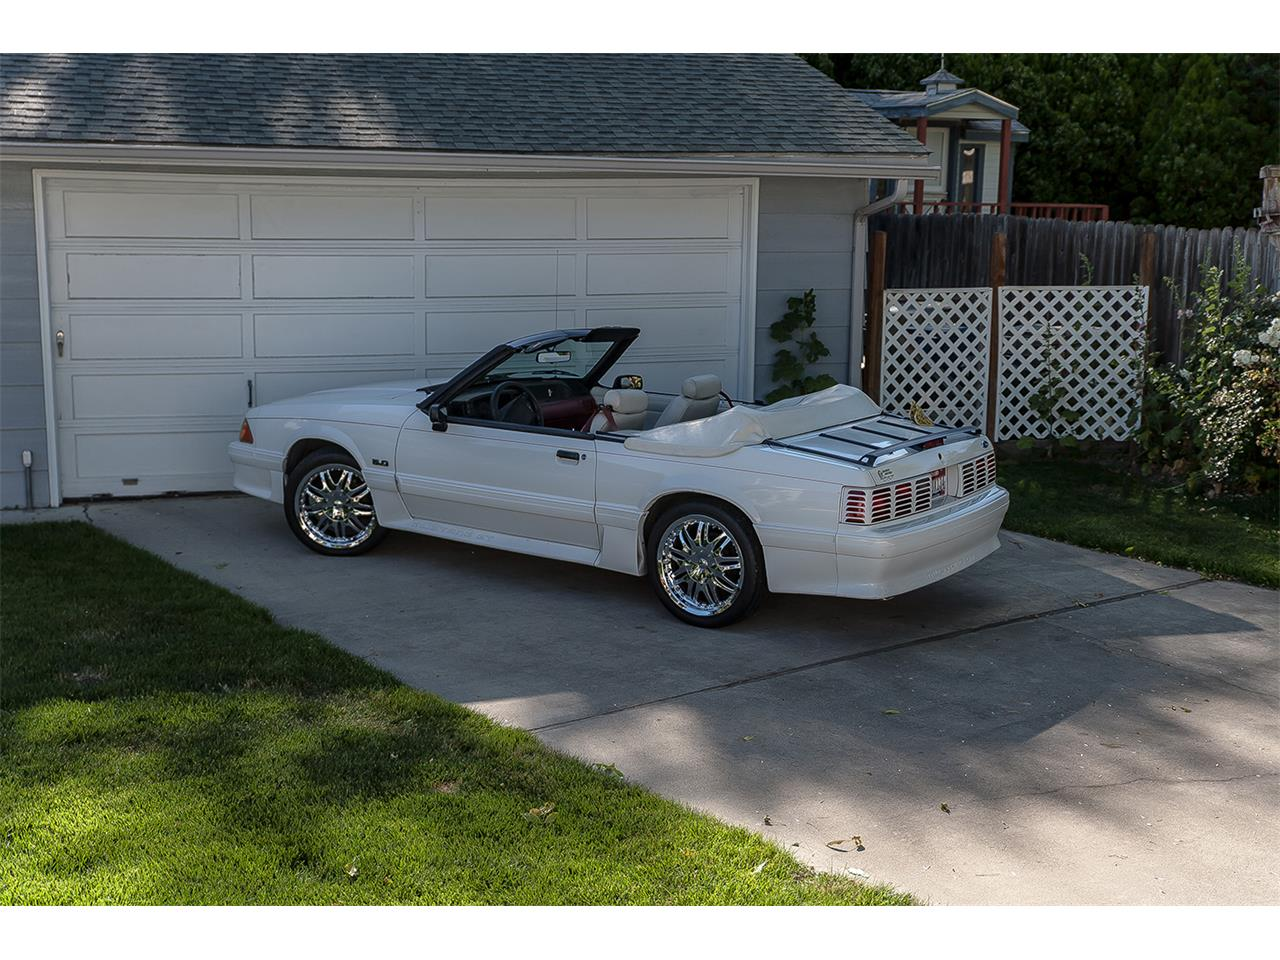 Large Picture of 1990 Mustang GT located in boise Idaho - $11,500.00 Offered by a Private Seller - C49X